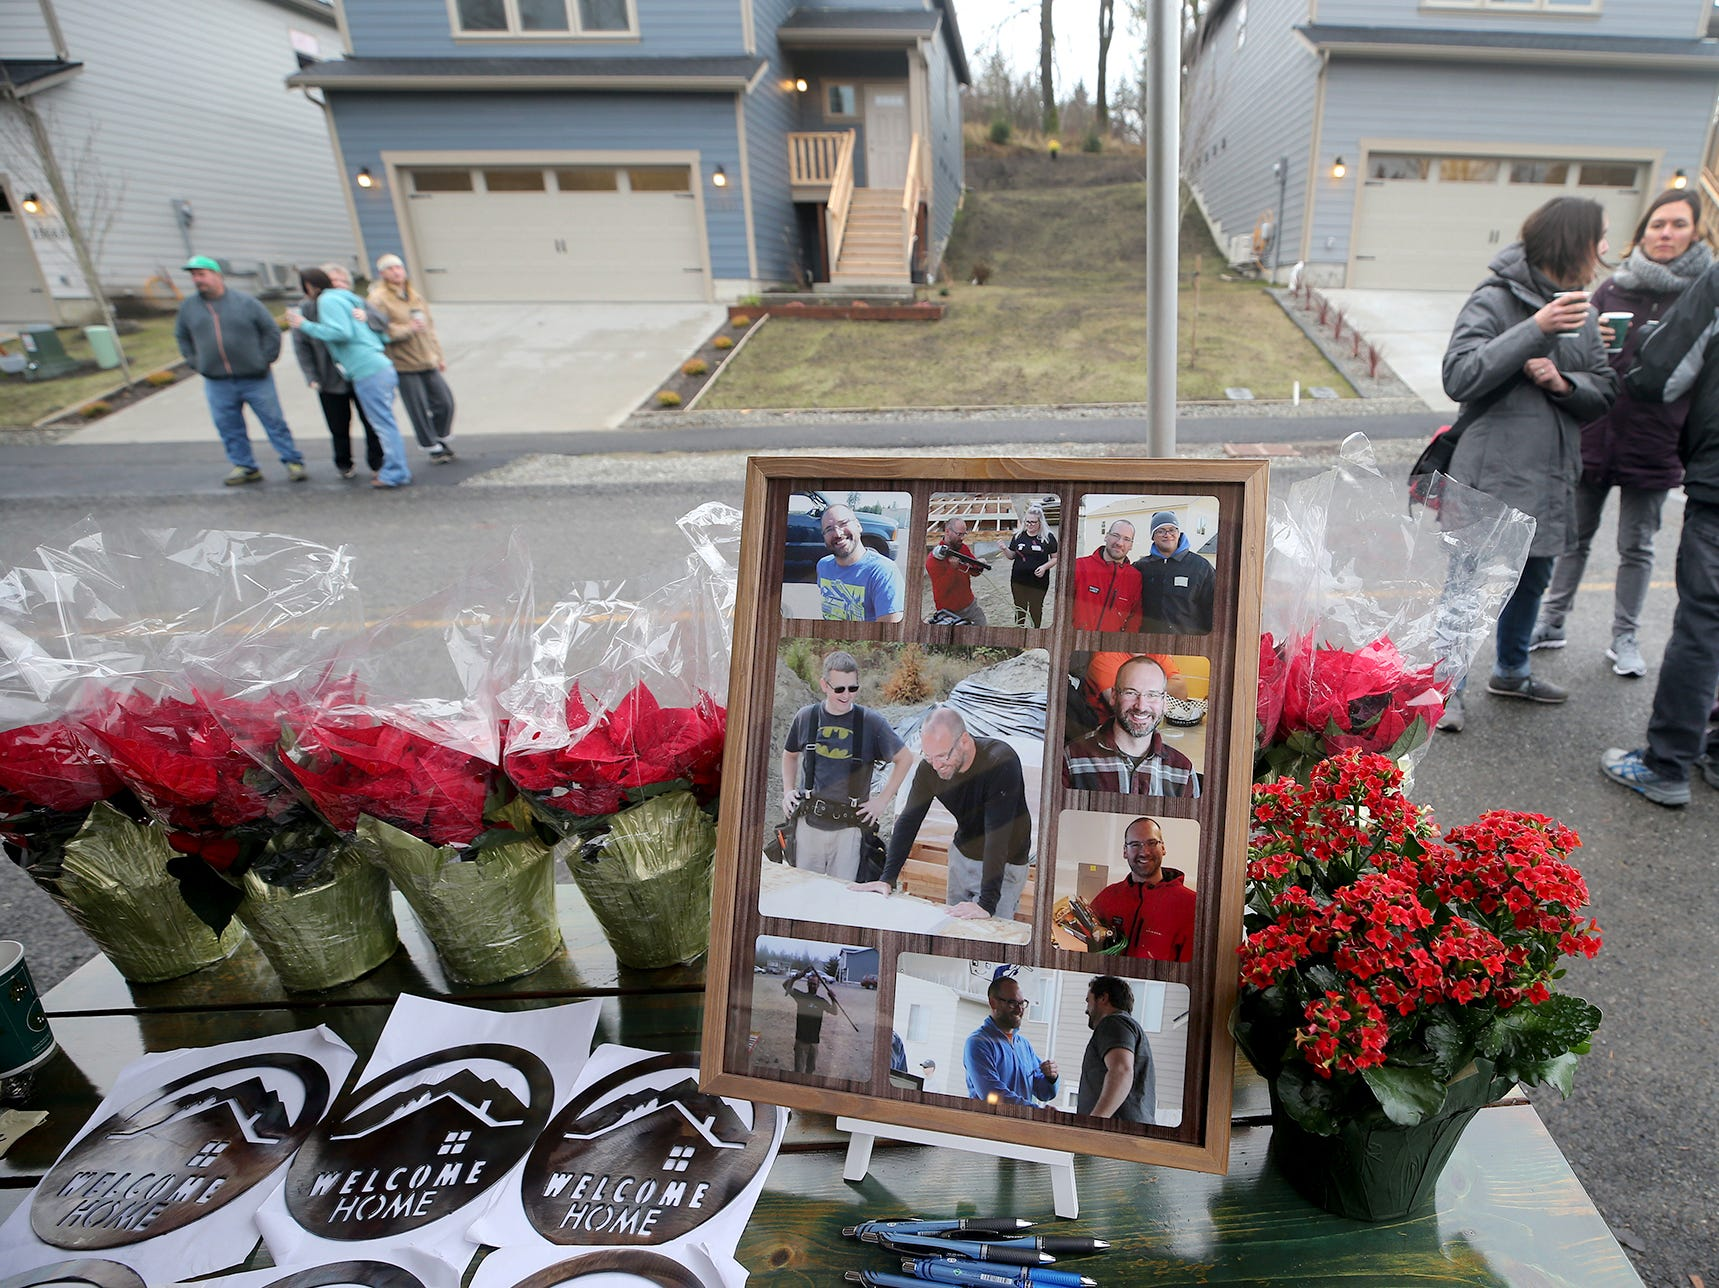 A memorial for Michael Porter who was the construction superintendent  that tragically passed away last week at the Kingston Housing Kitsap grand opening.